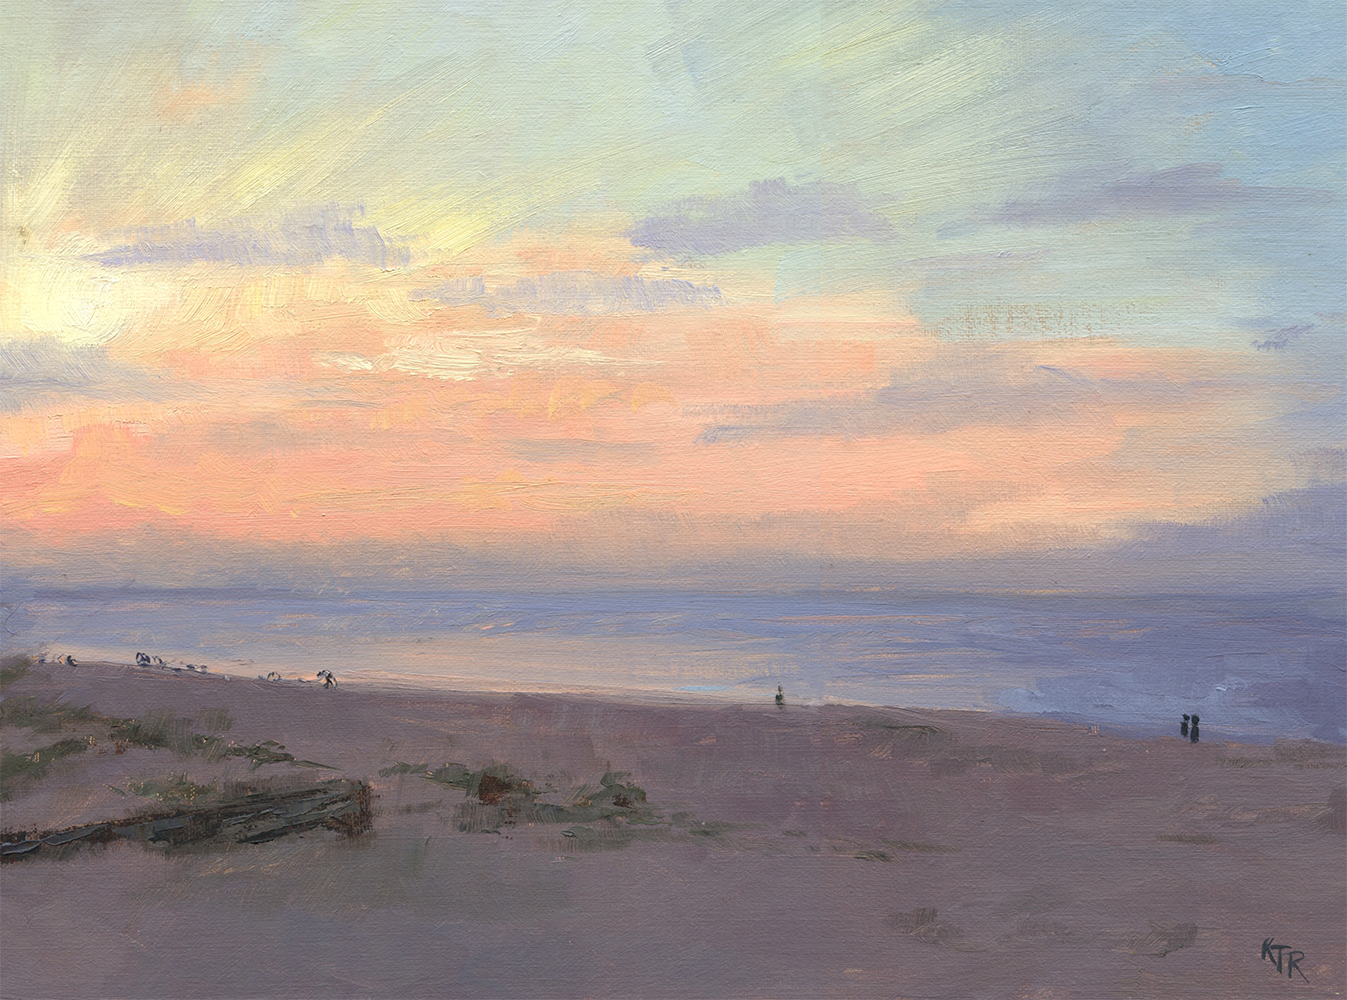 RichardsKim_Sunset Over the Ocean_oil